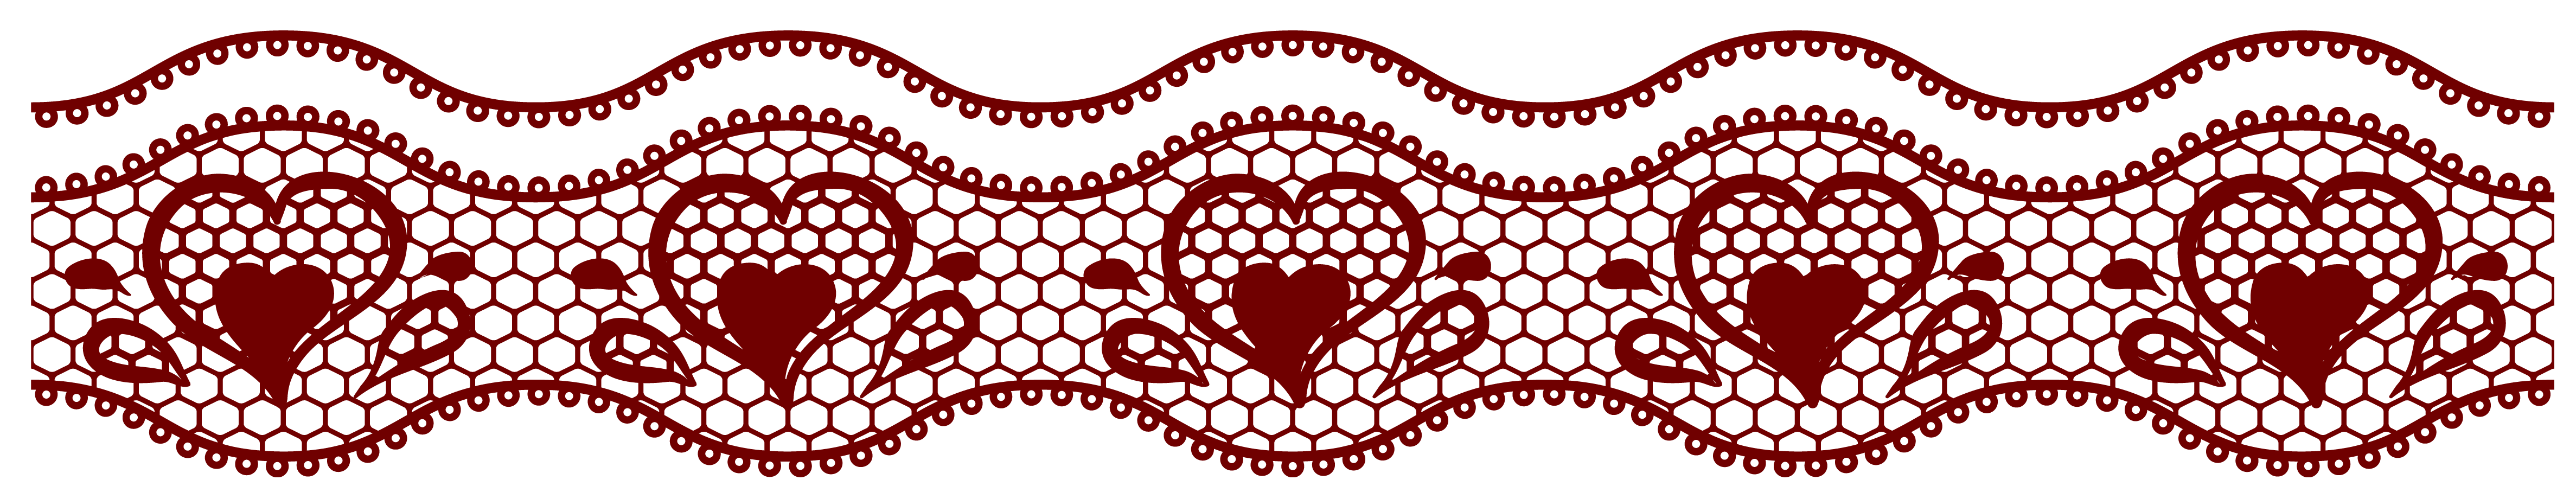 clipart transparent Lace free download on. Laces clipart banner.